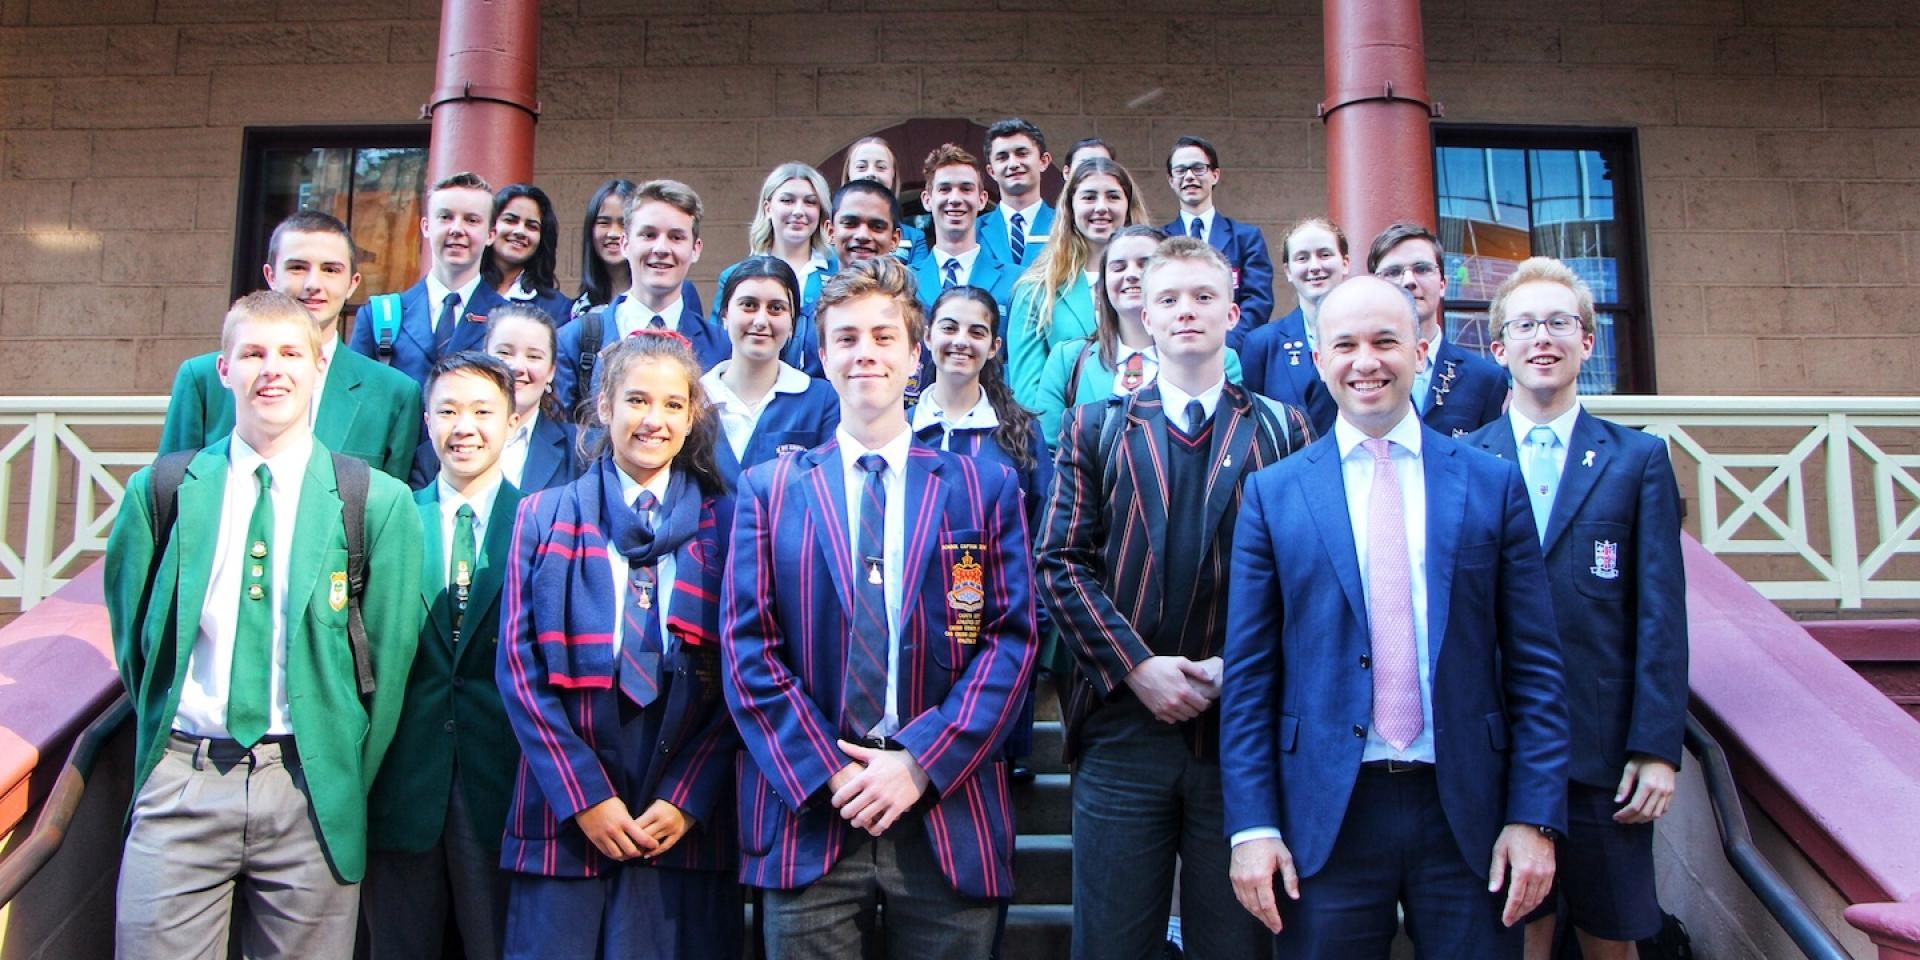 Minister Kean with School Leaders from Hornsby High Schools